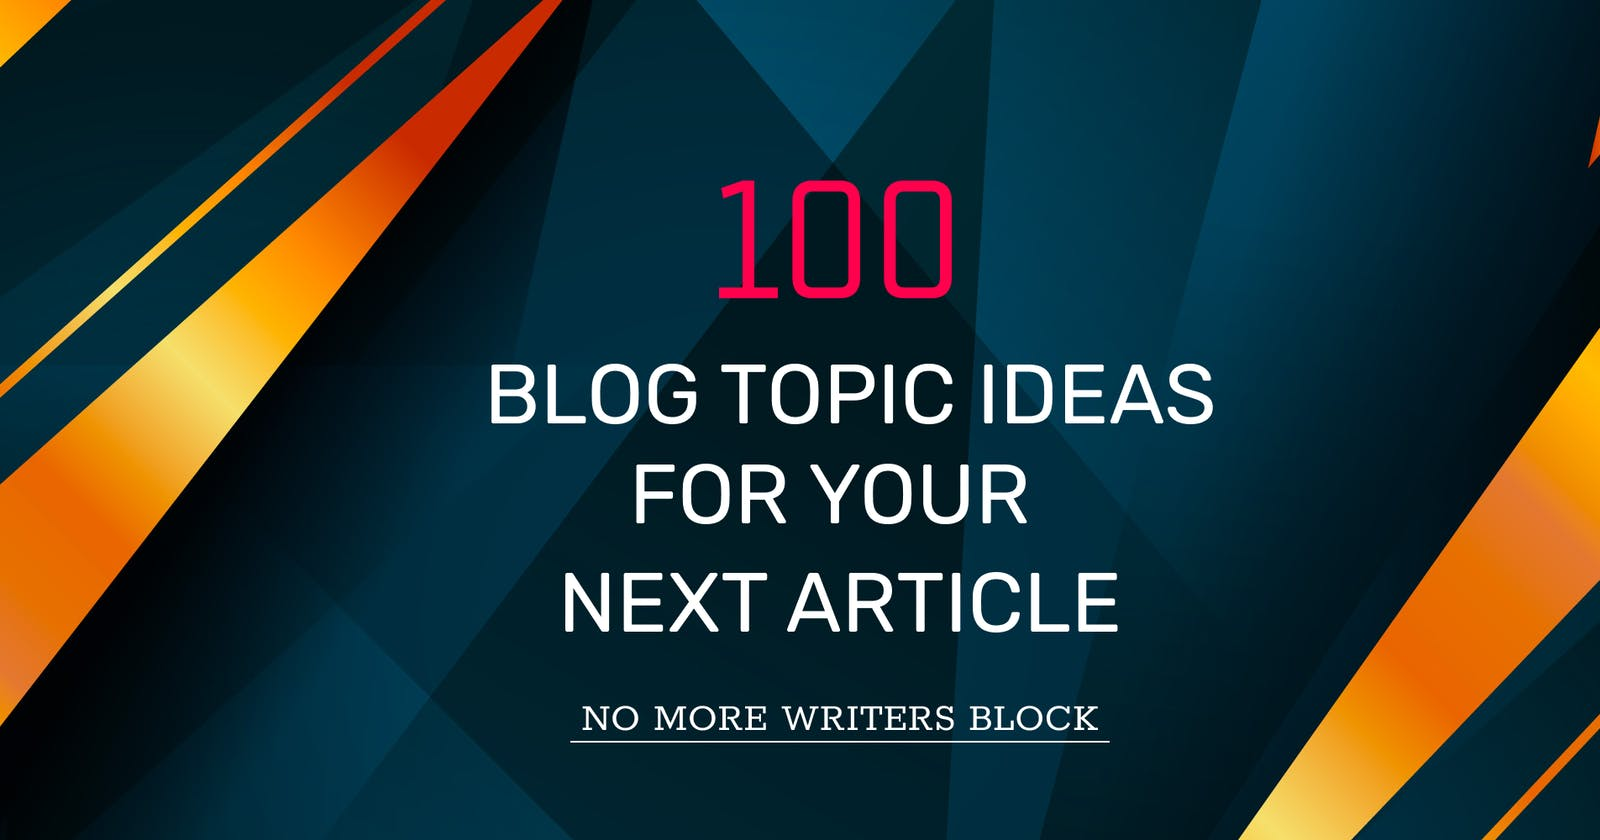 100 blog topic ideas for your next article - No more writers block